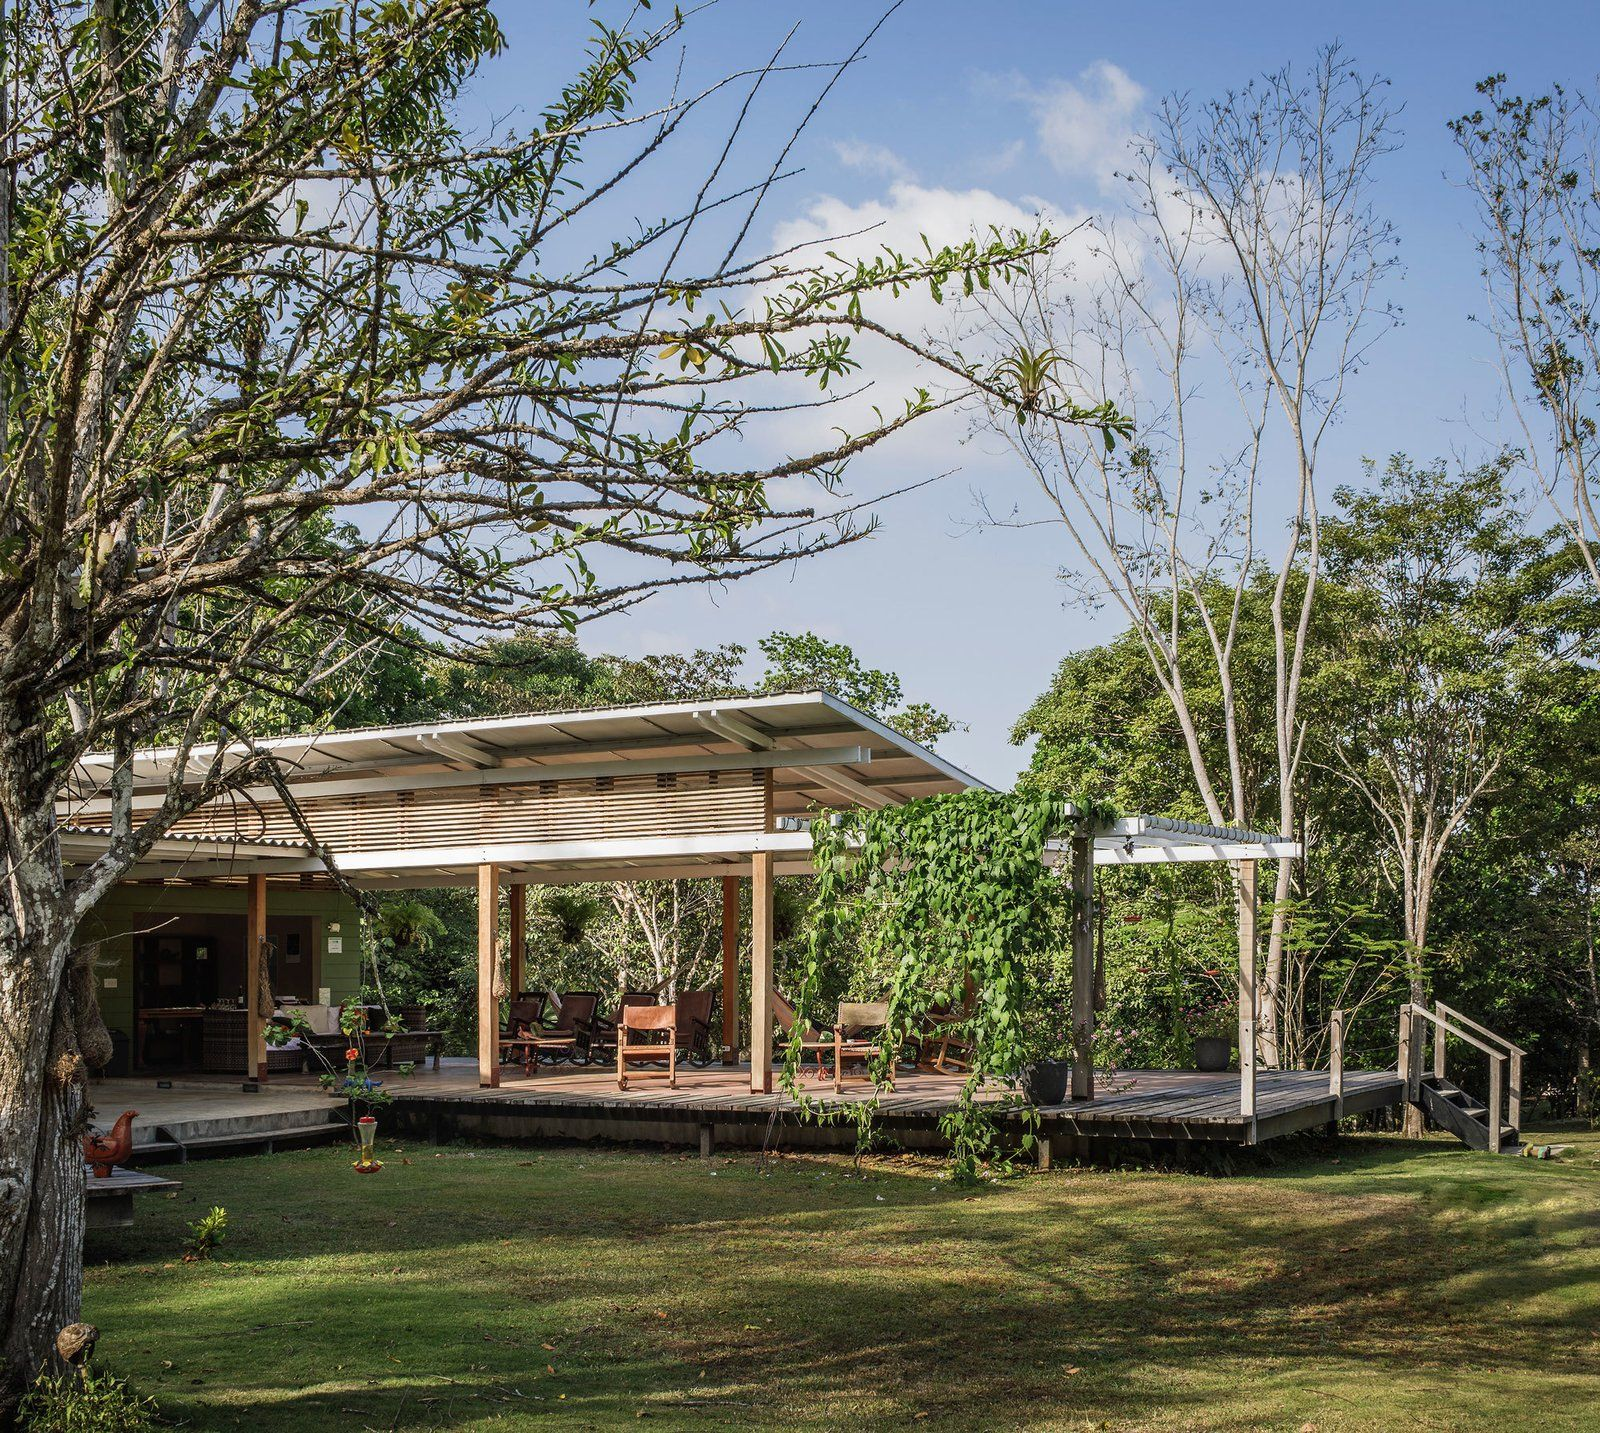 An eco-friendly retreat built in a lush forested area near a natural reserve in Panama.